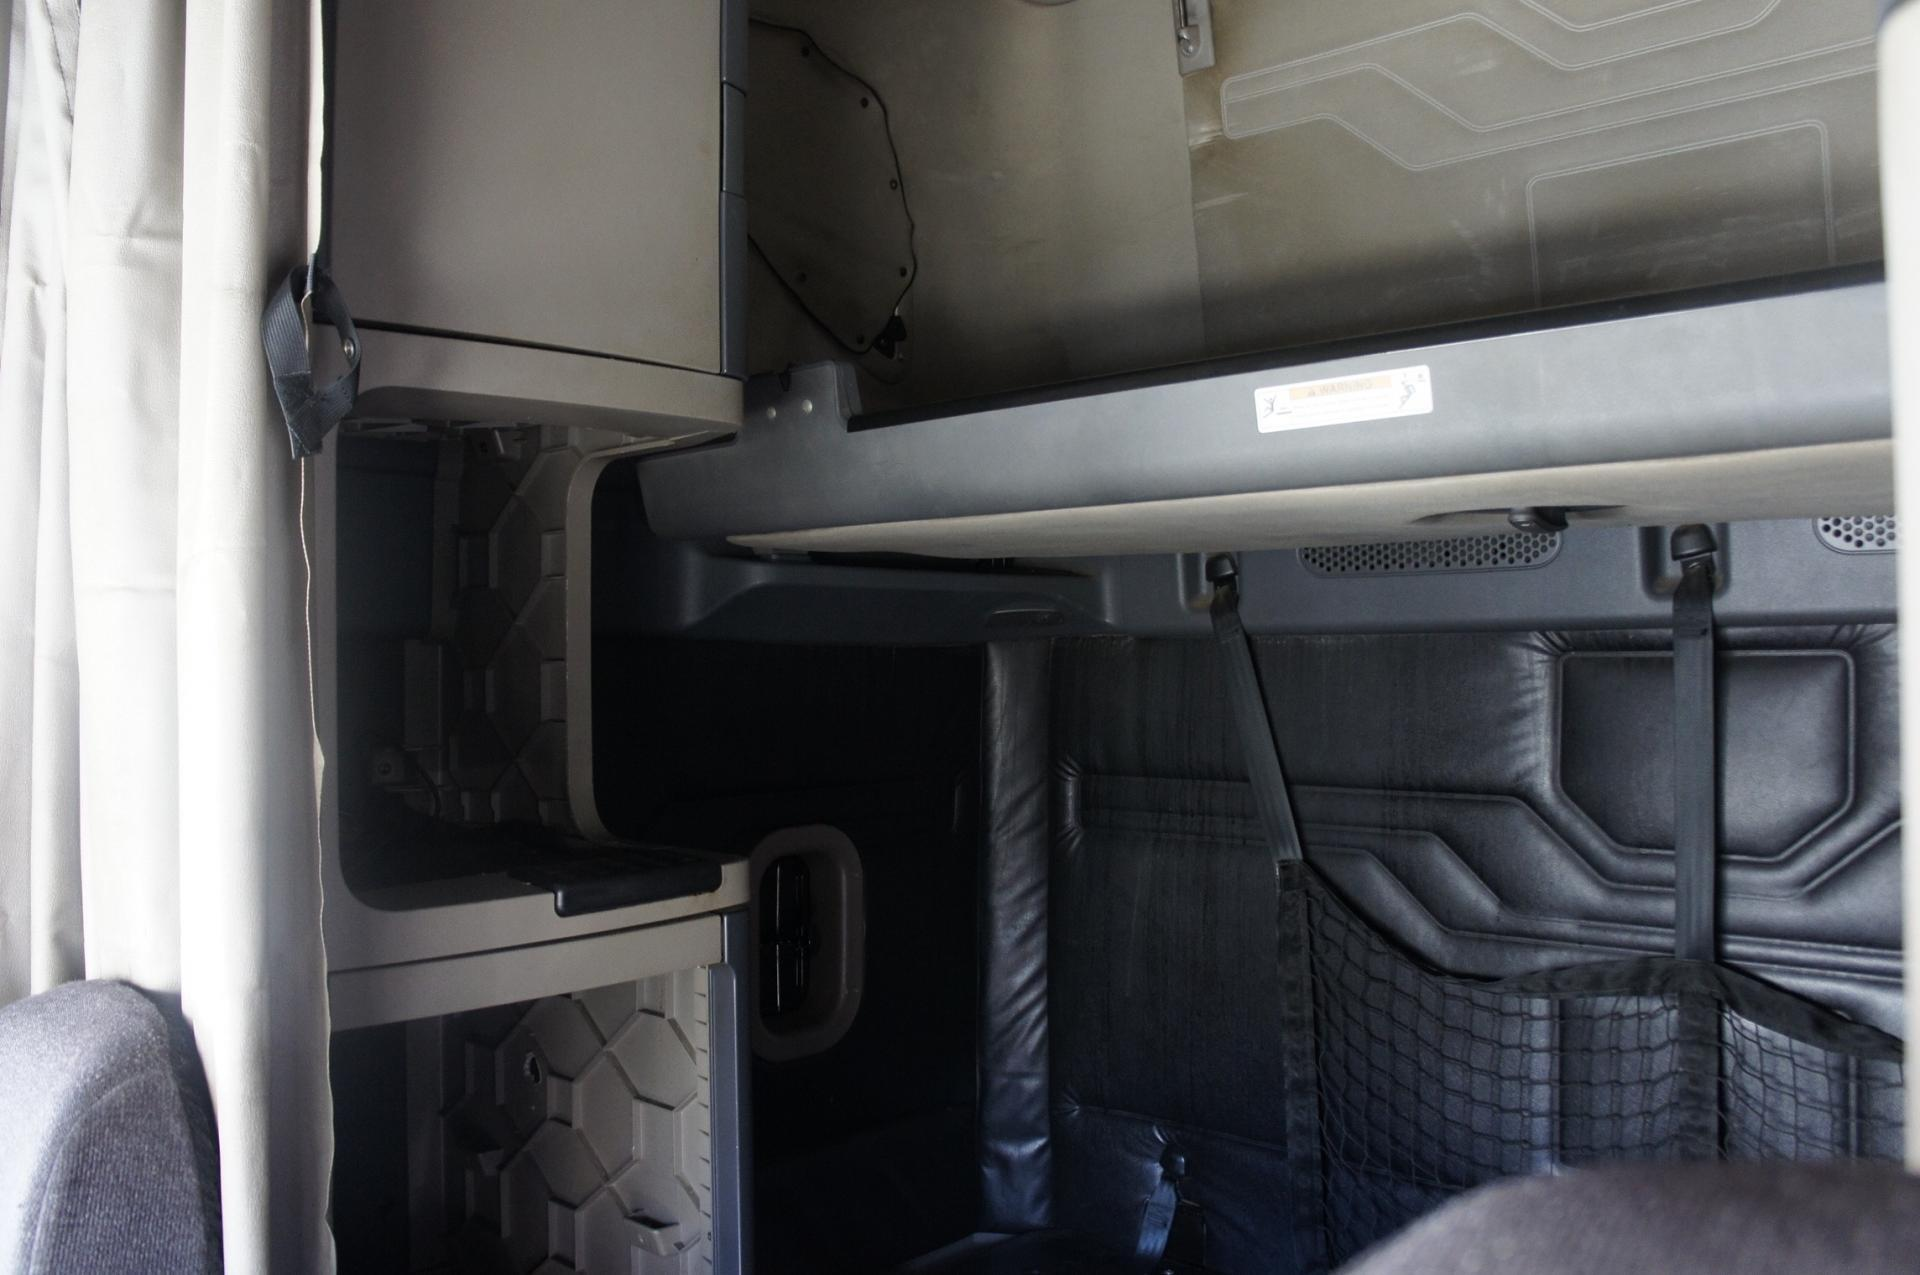 Used 2012 Freightliner Cascadia for sale-59087146